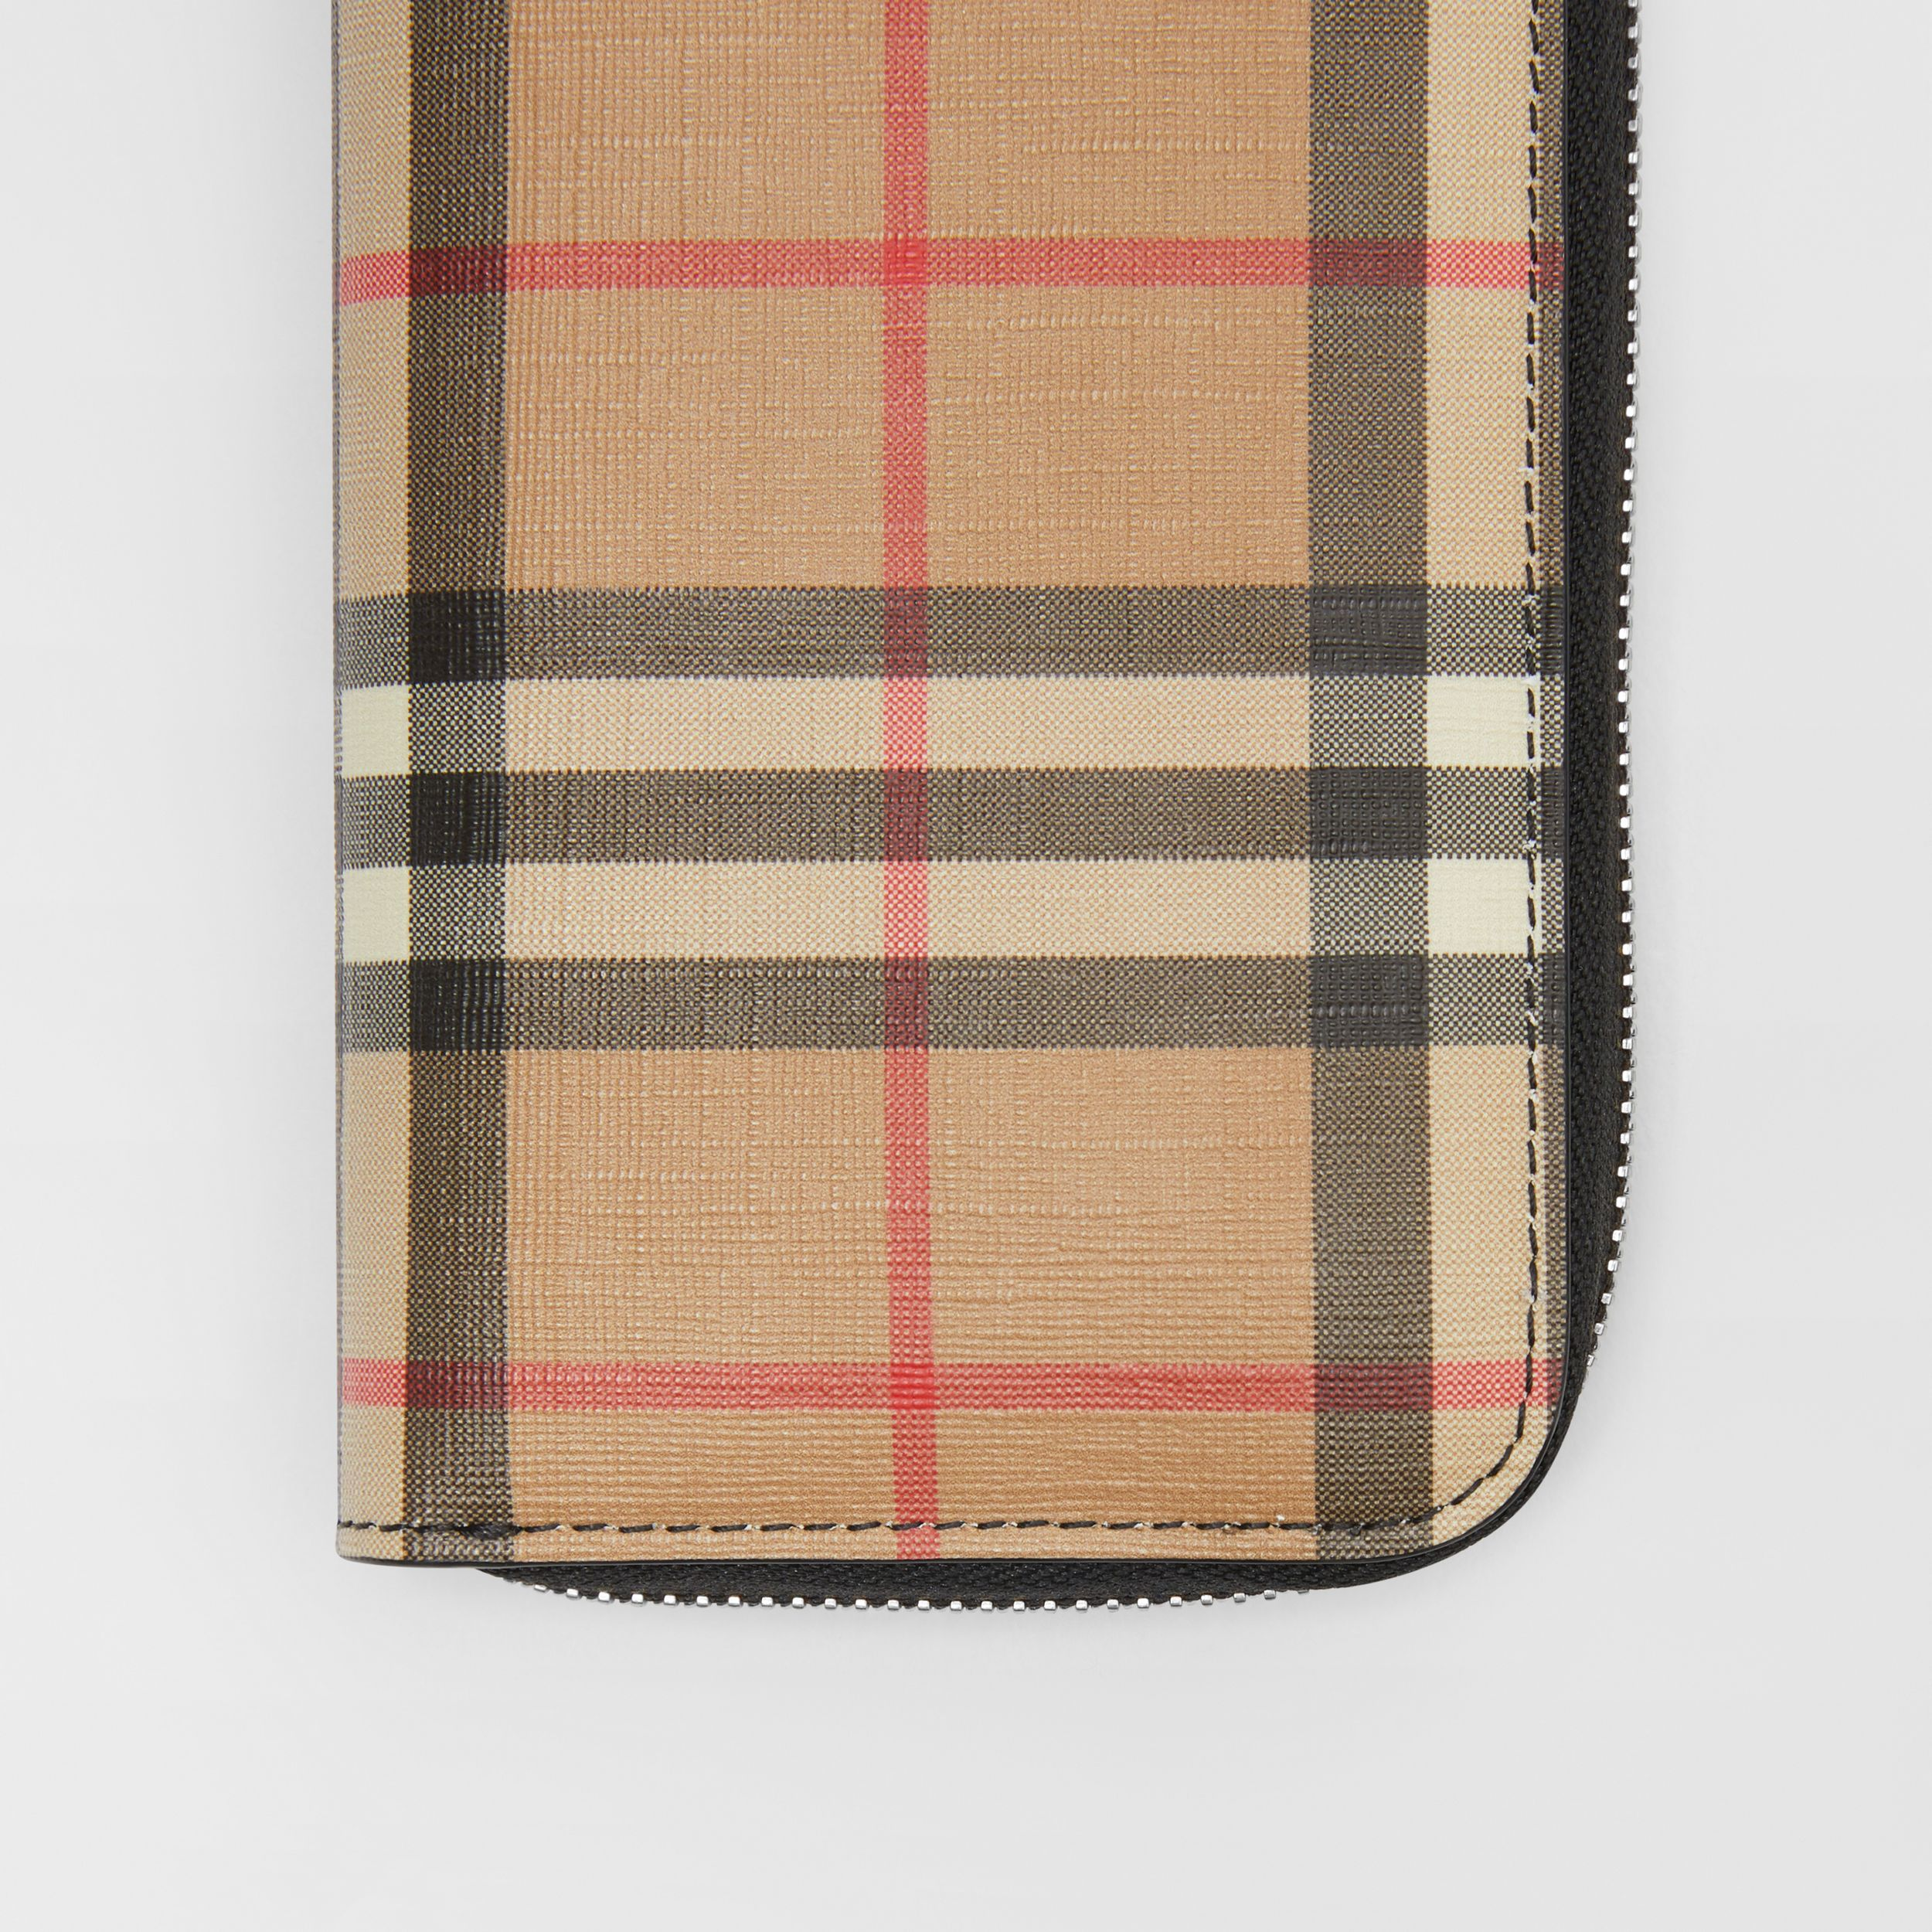 Vintage Check and Leather Ziparound Wallet in Black - Women | Burberry United States - 2